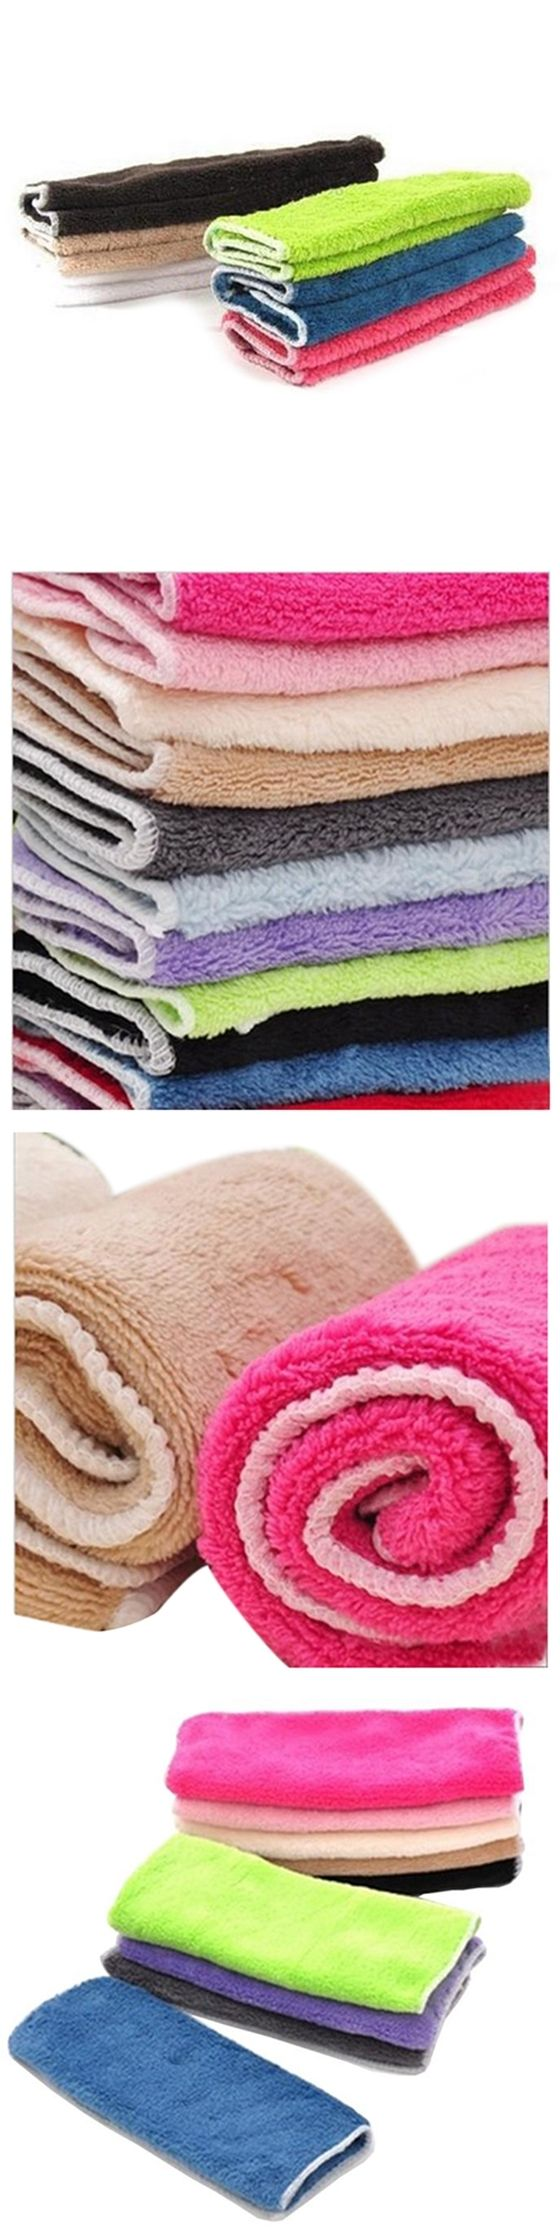 HOT GCZW-Anti-grease Cloth Bamboo Fiber Washing Towel Magic Kitchen Cleaning Wiping Rags